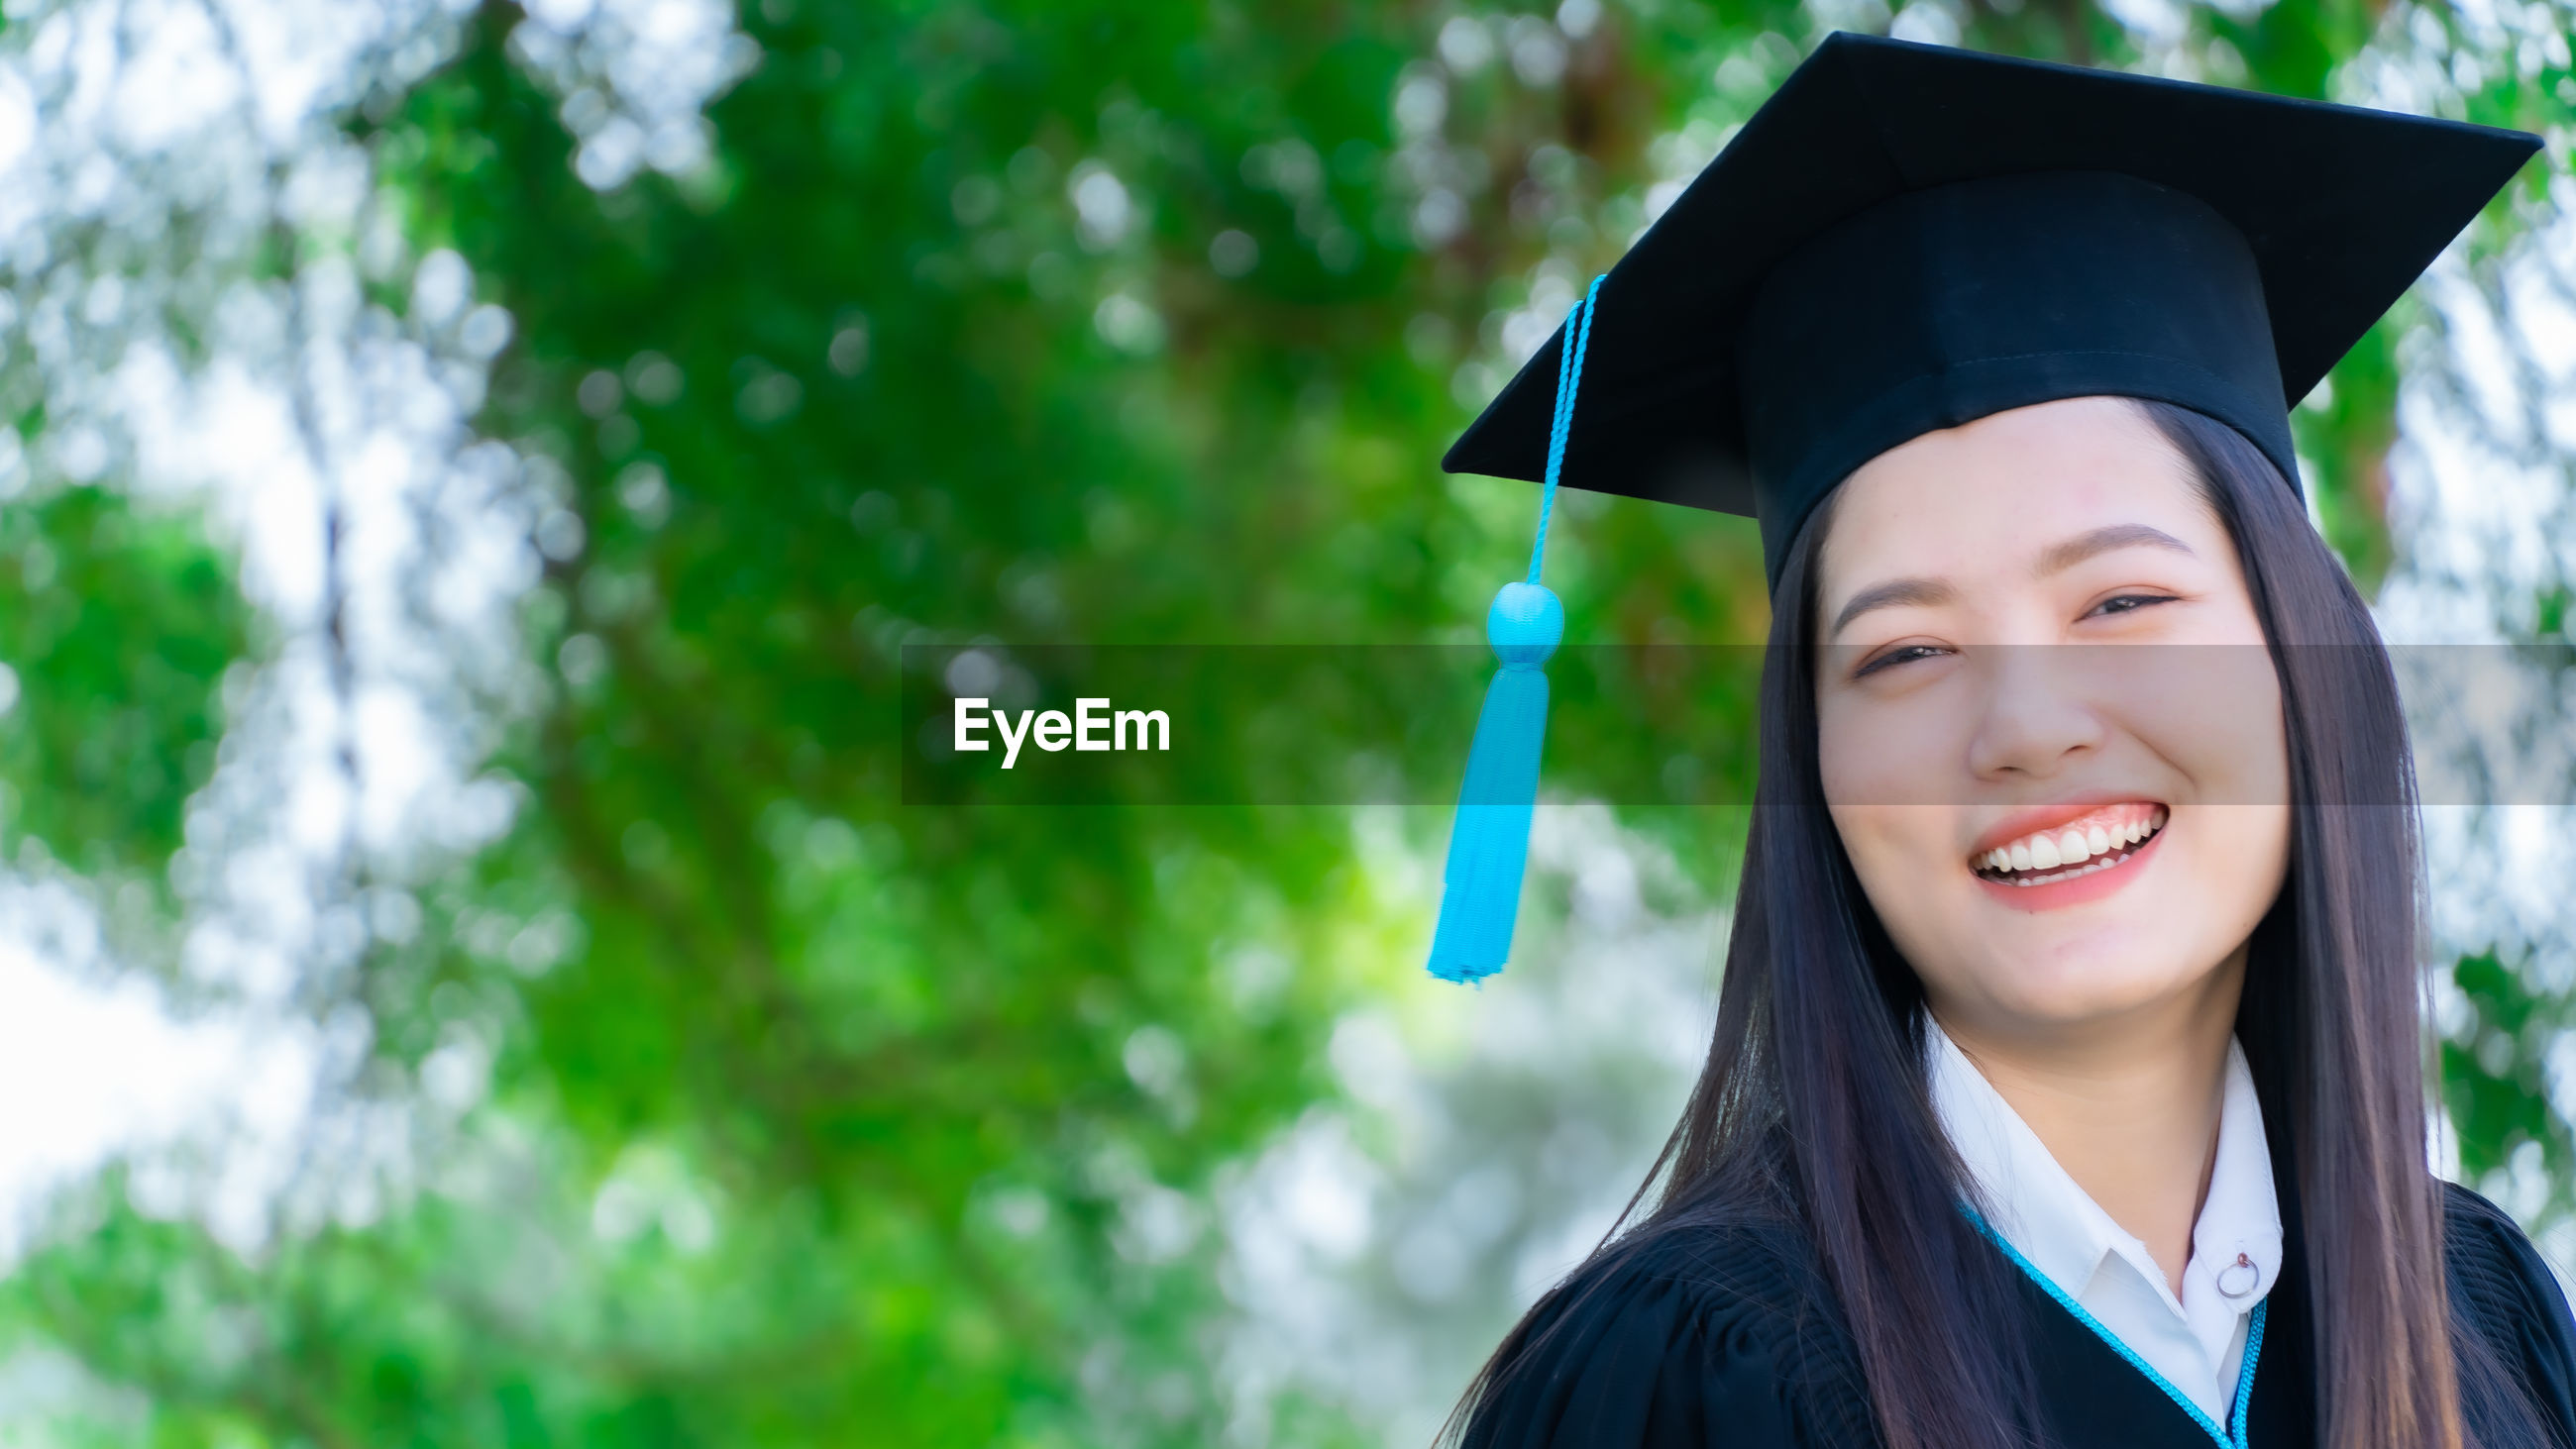 Portrait of smiling young woman wearing graduation gown while standing outdoors